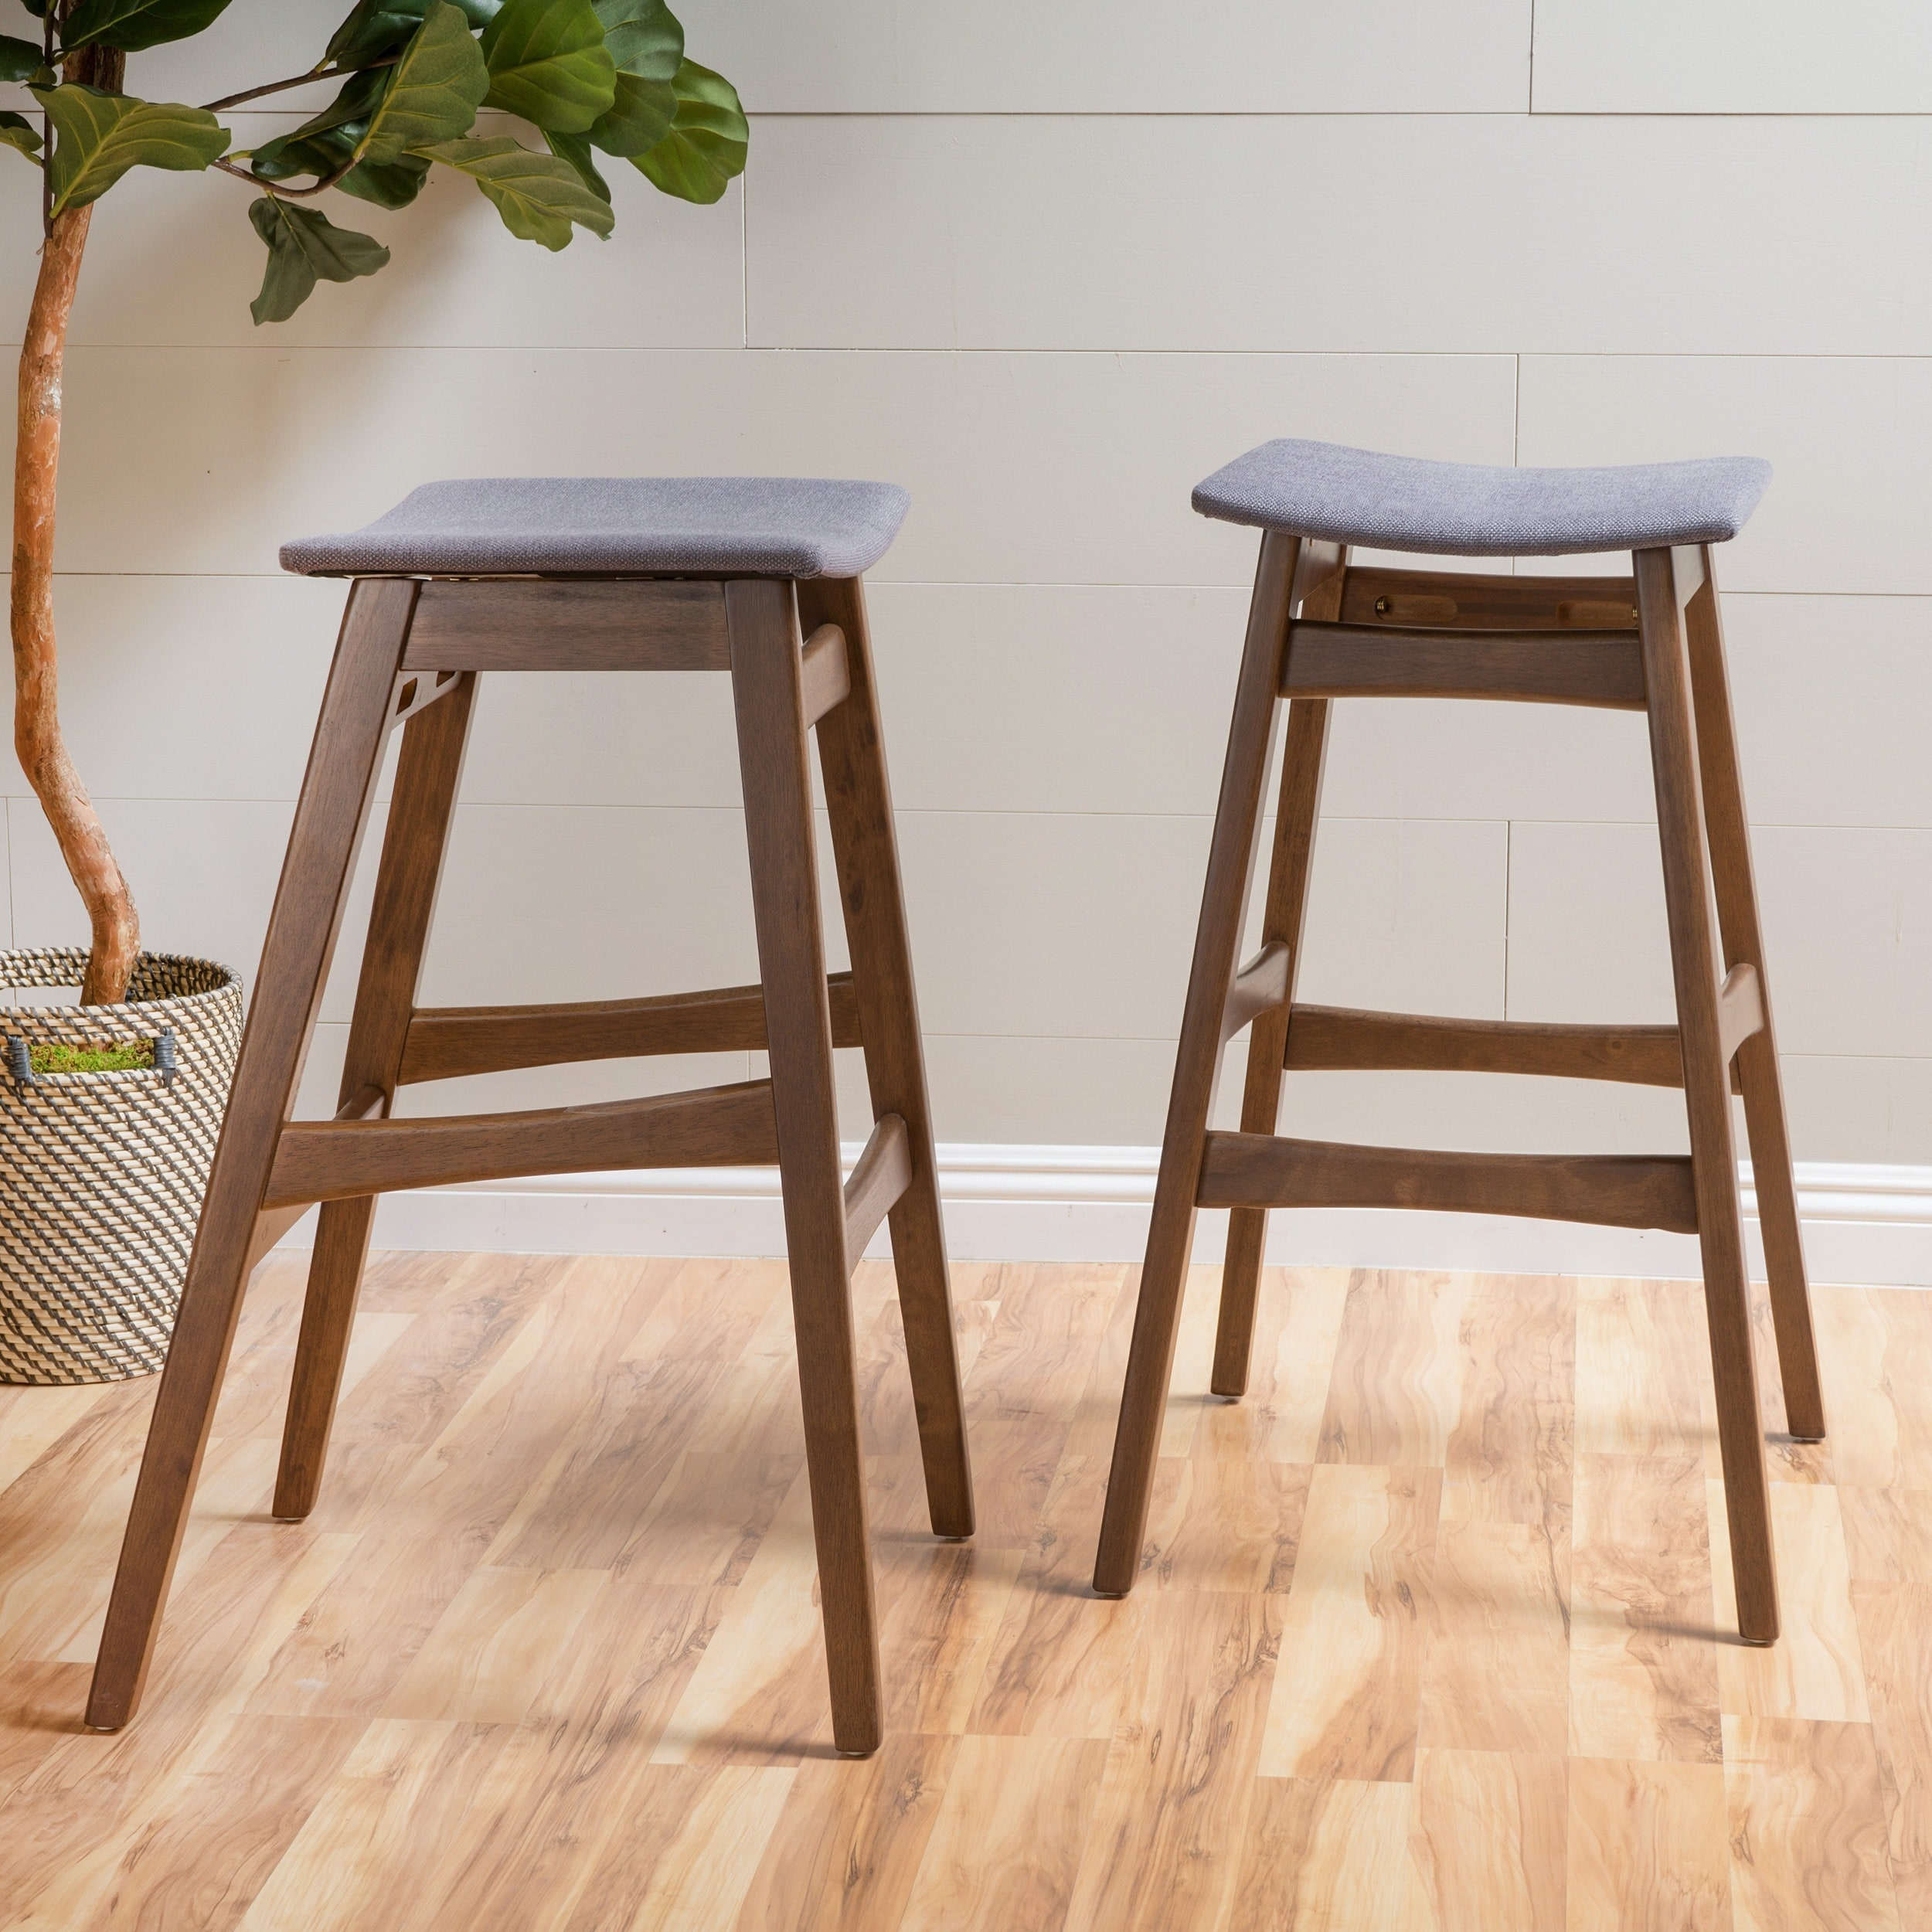 Shop carson carrington forssa 30 inch mid century fabric bar stool set of 2 on sale free shipping today overstock com 21247378